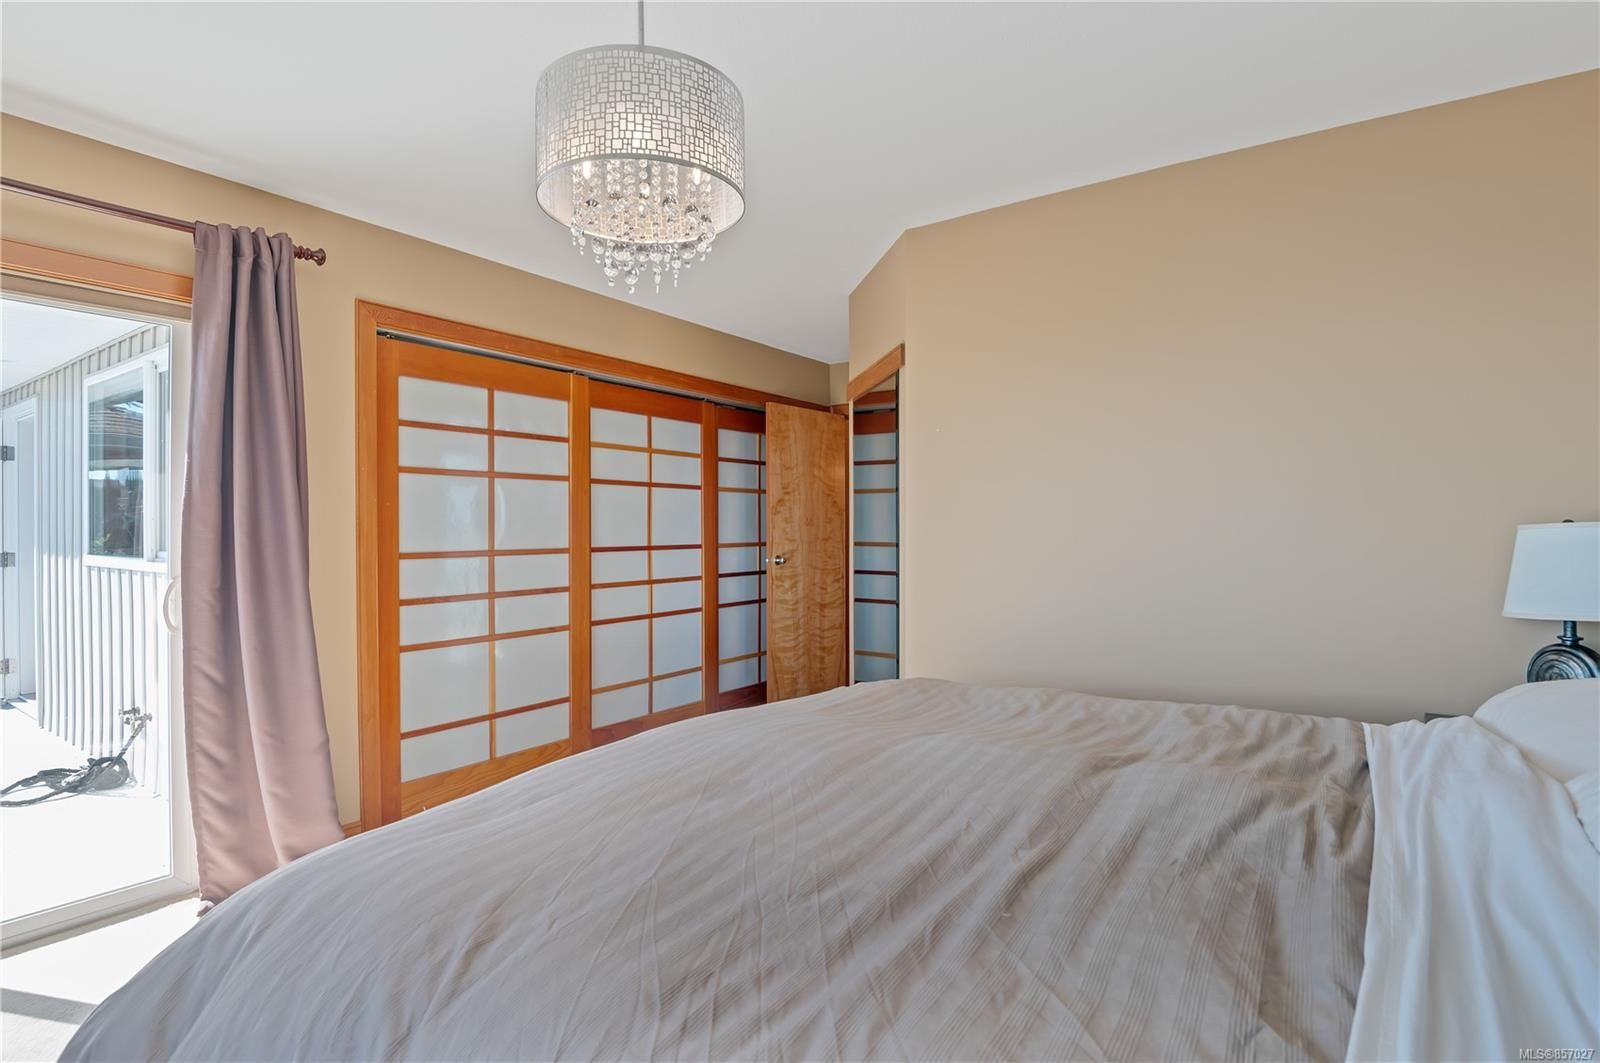 Photo 36: Photos: 253 S Alder St in : CR Campbell River South House for sale (Campbell River)  : MLS®# 857027